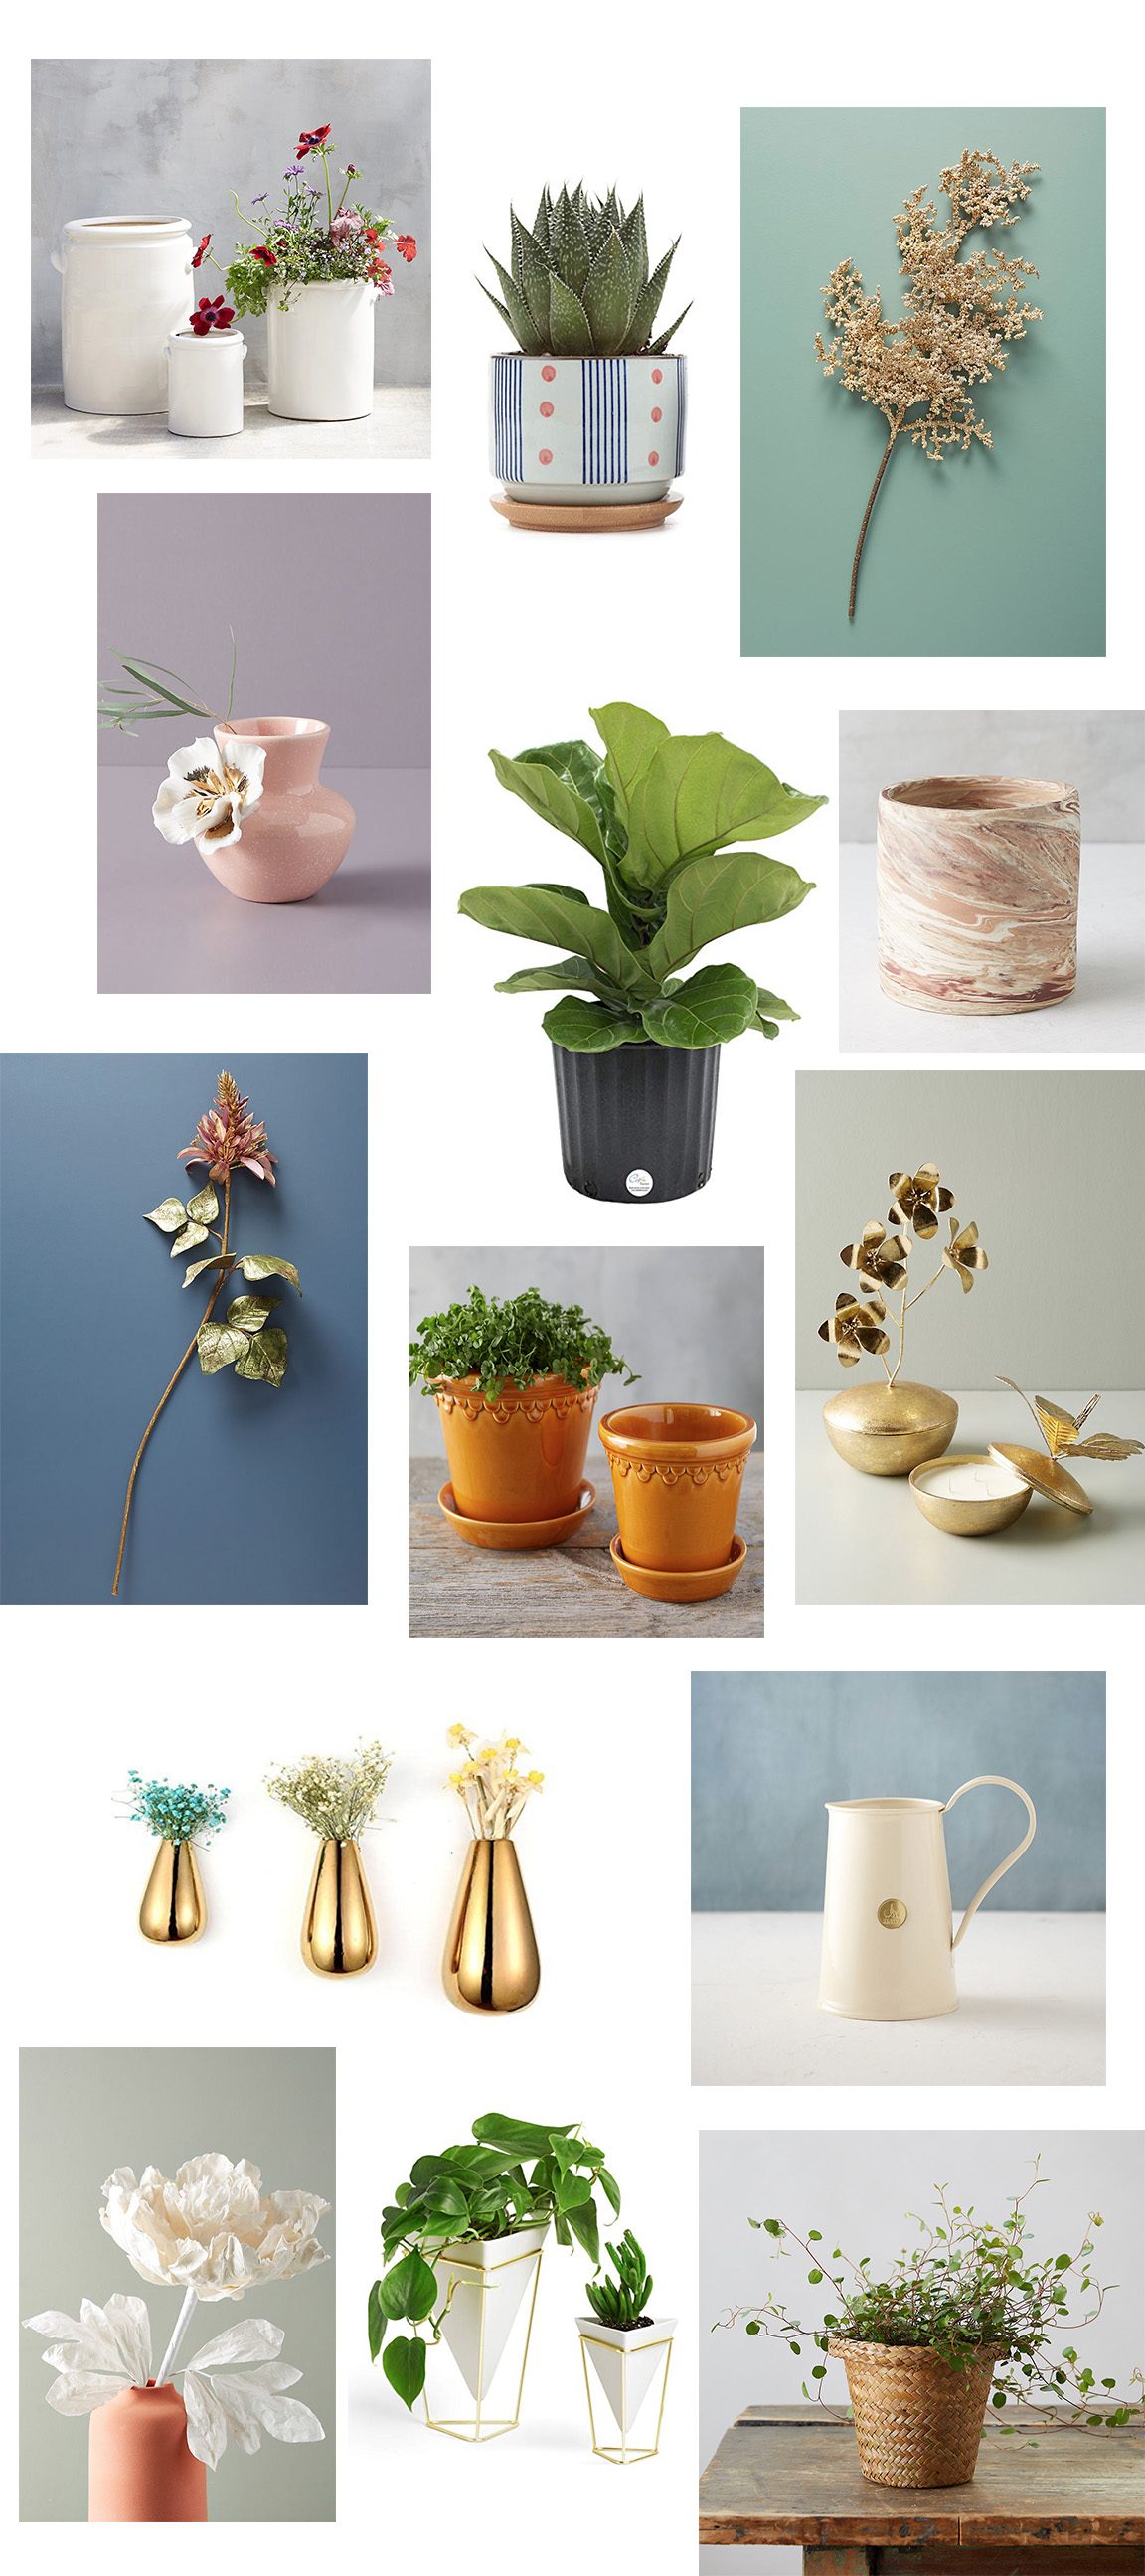 Gift Guide: The Plant Lady